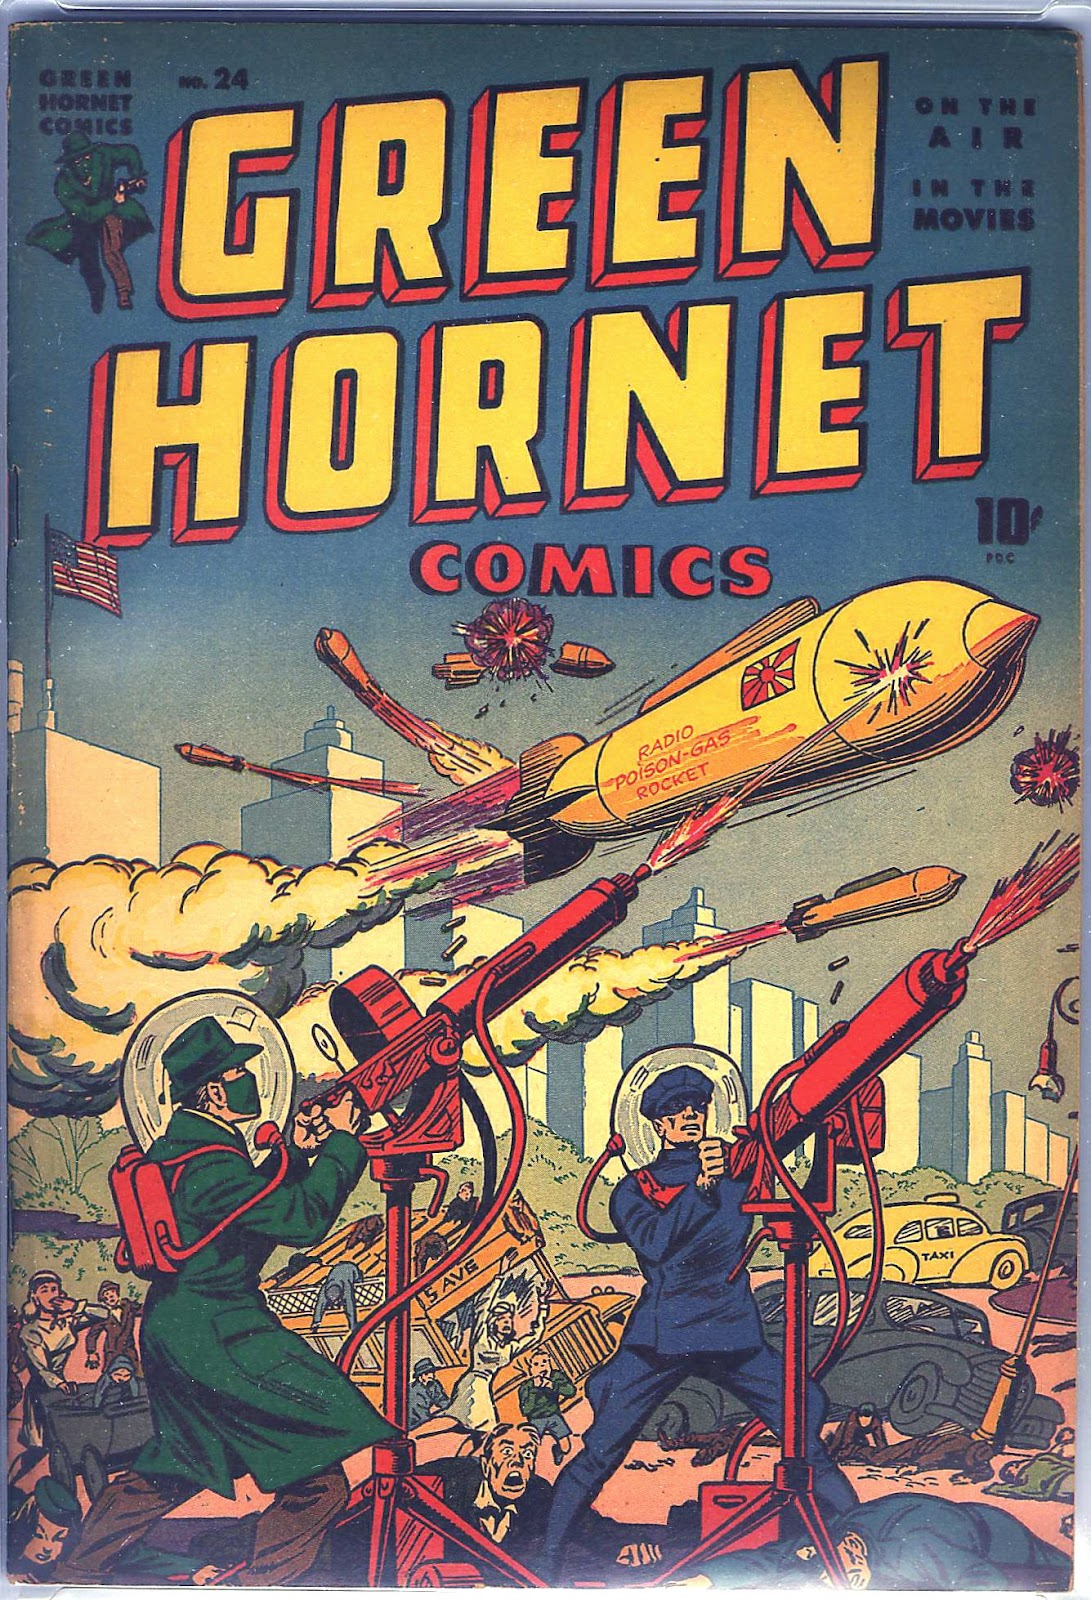 Green Hornet Comics issue 24 - Page 1